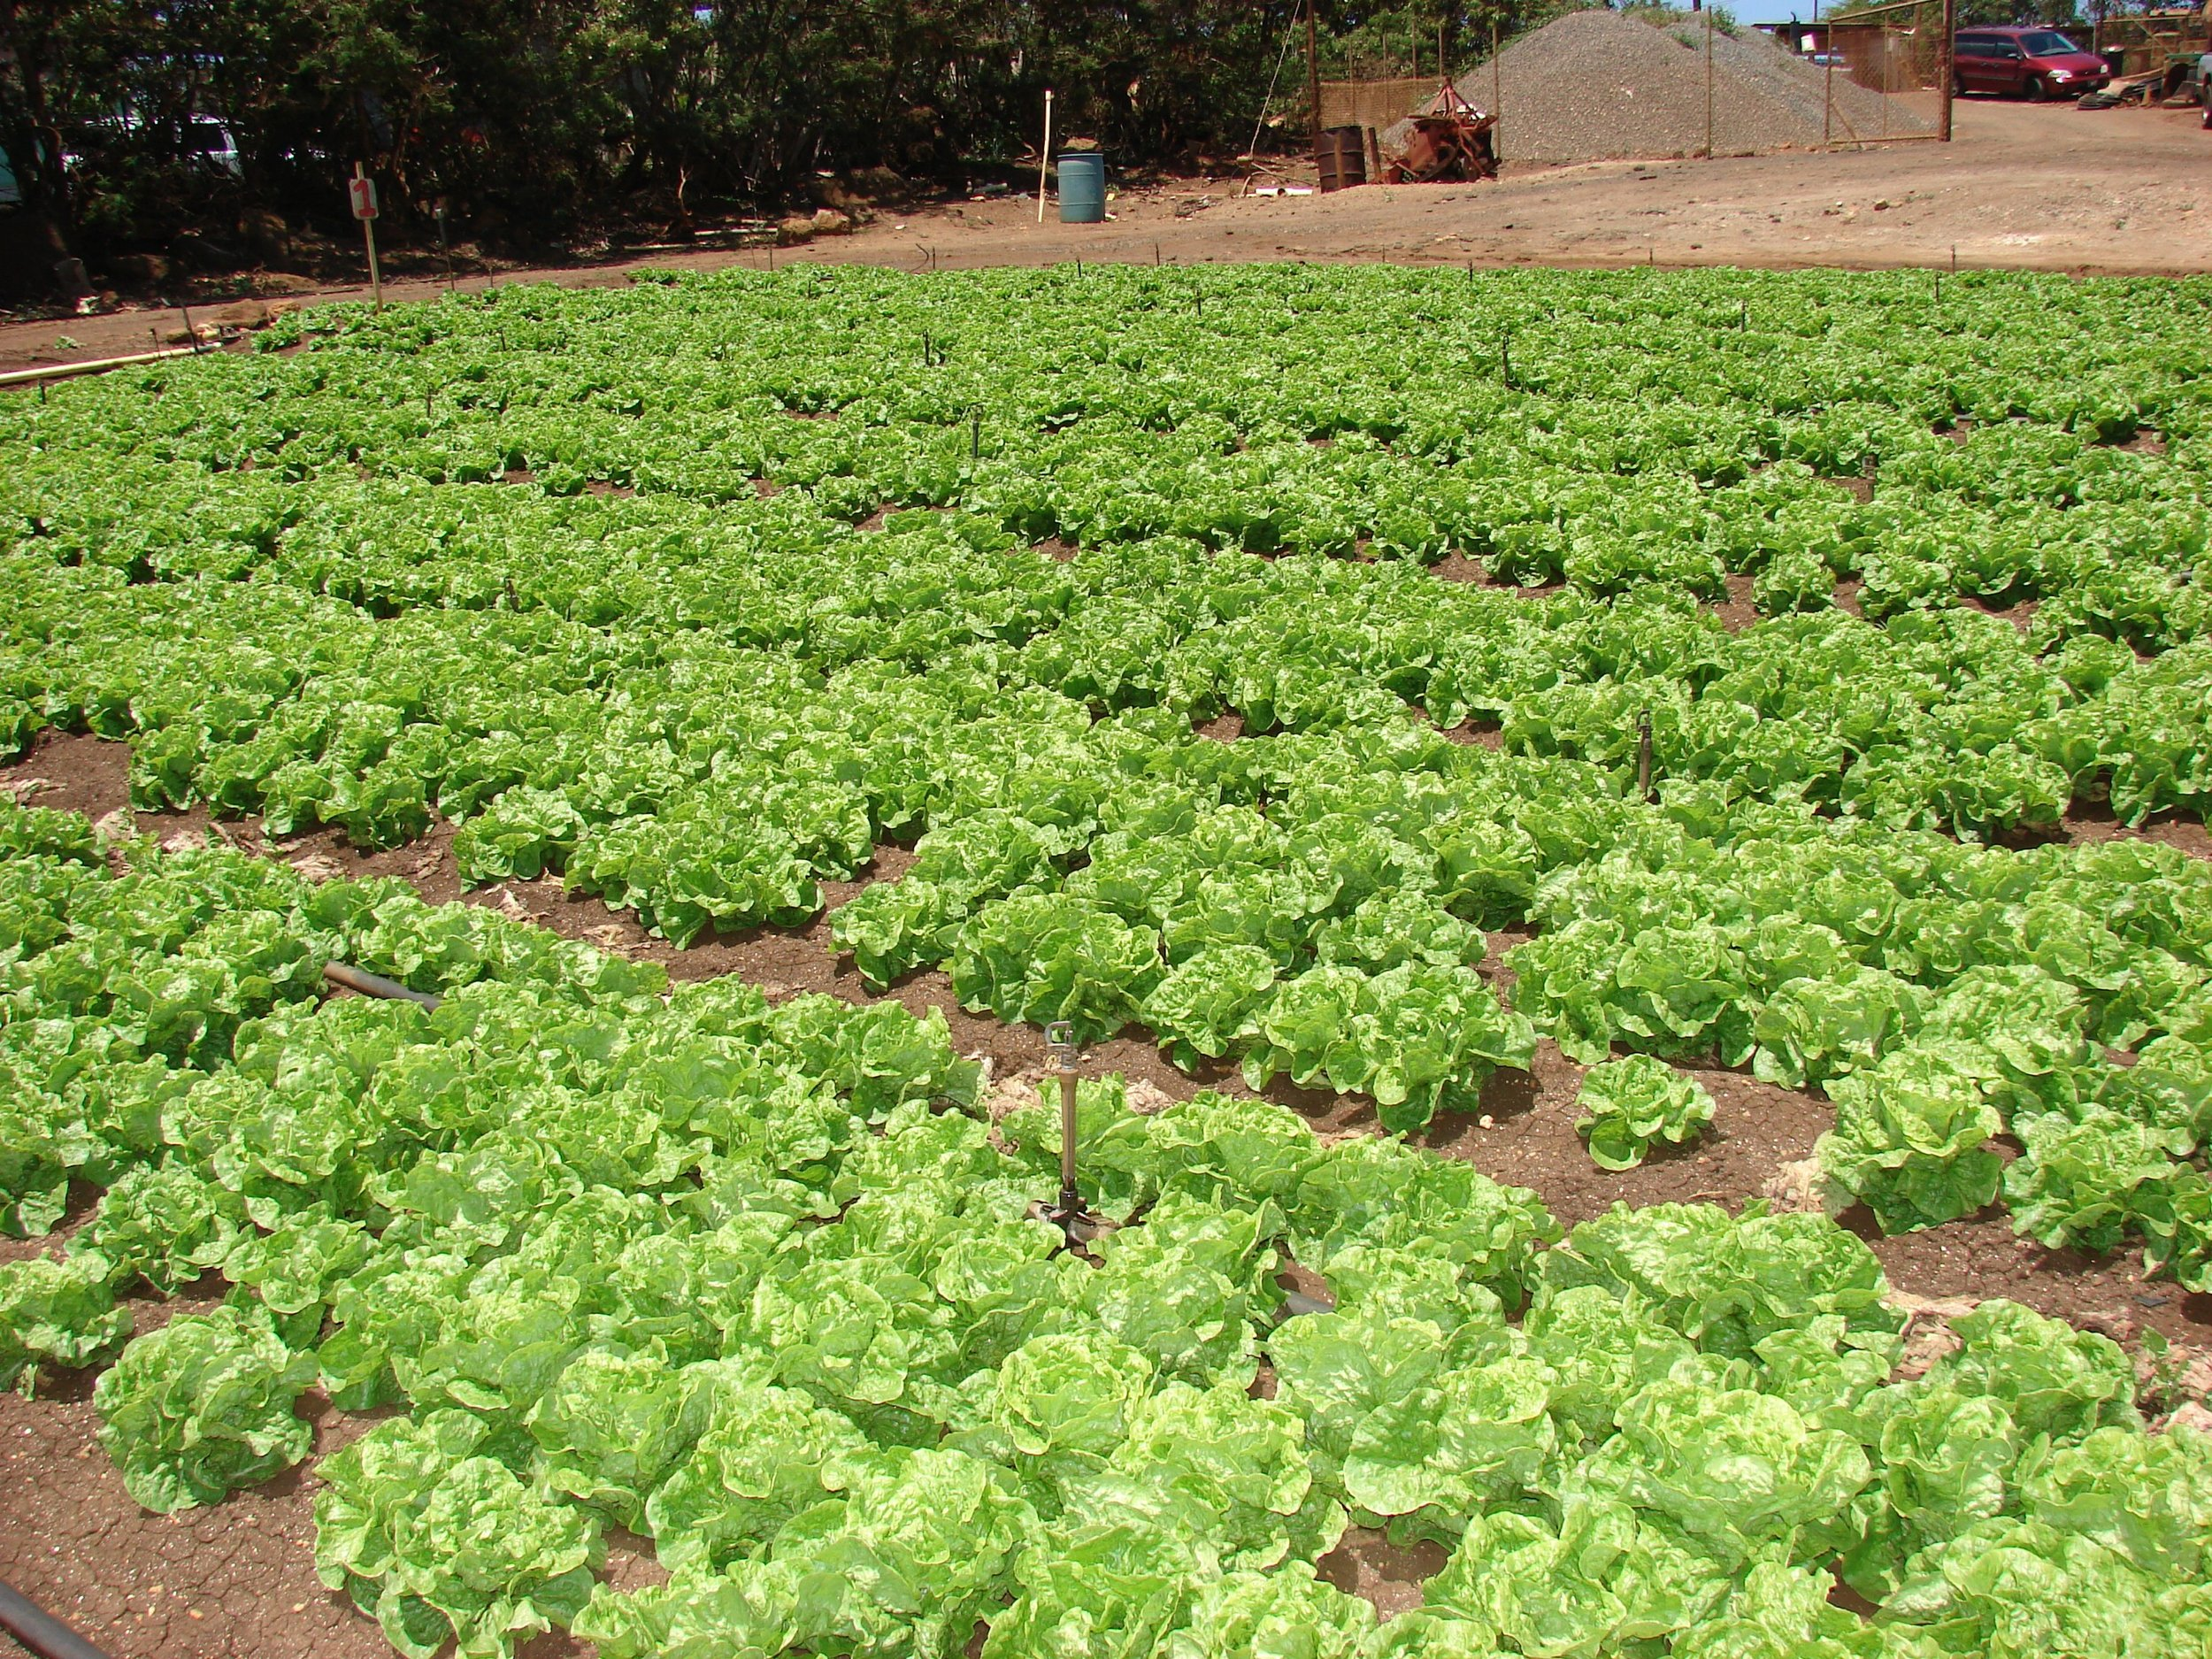 Another view of Manoa lettuce ready to harvest from the Fusarium wilt infected field.